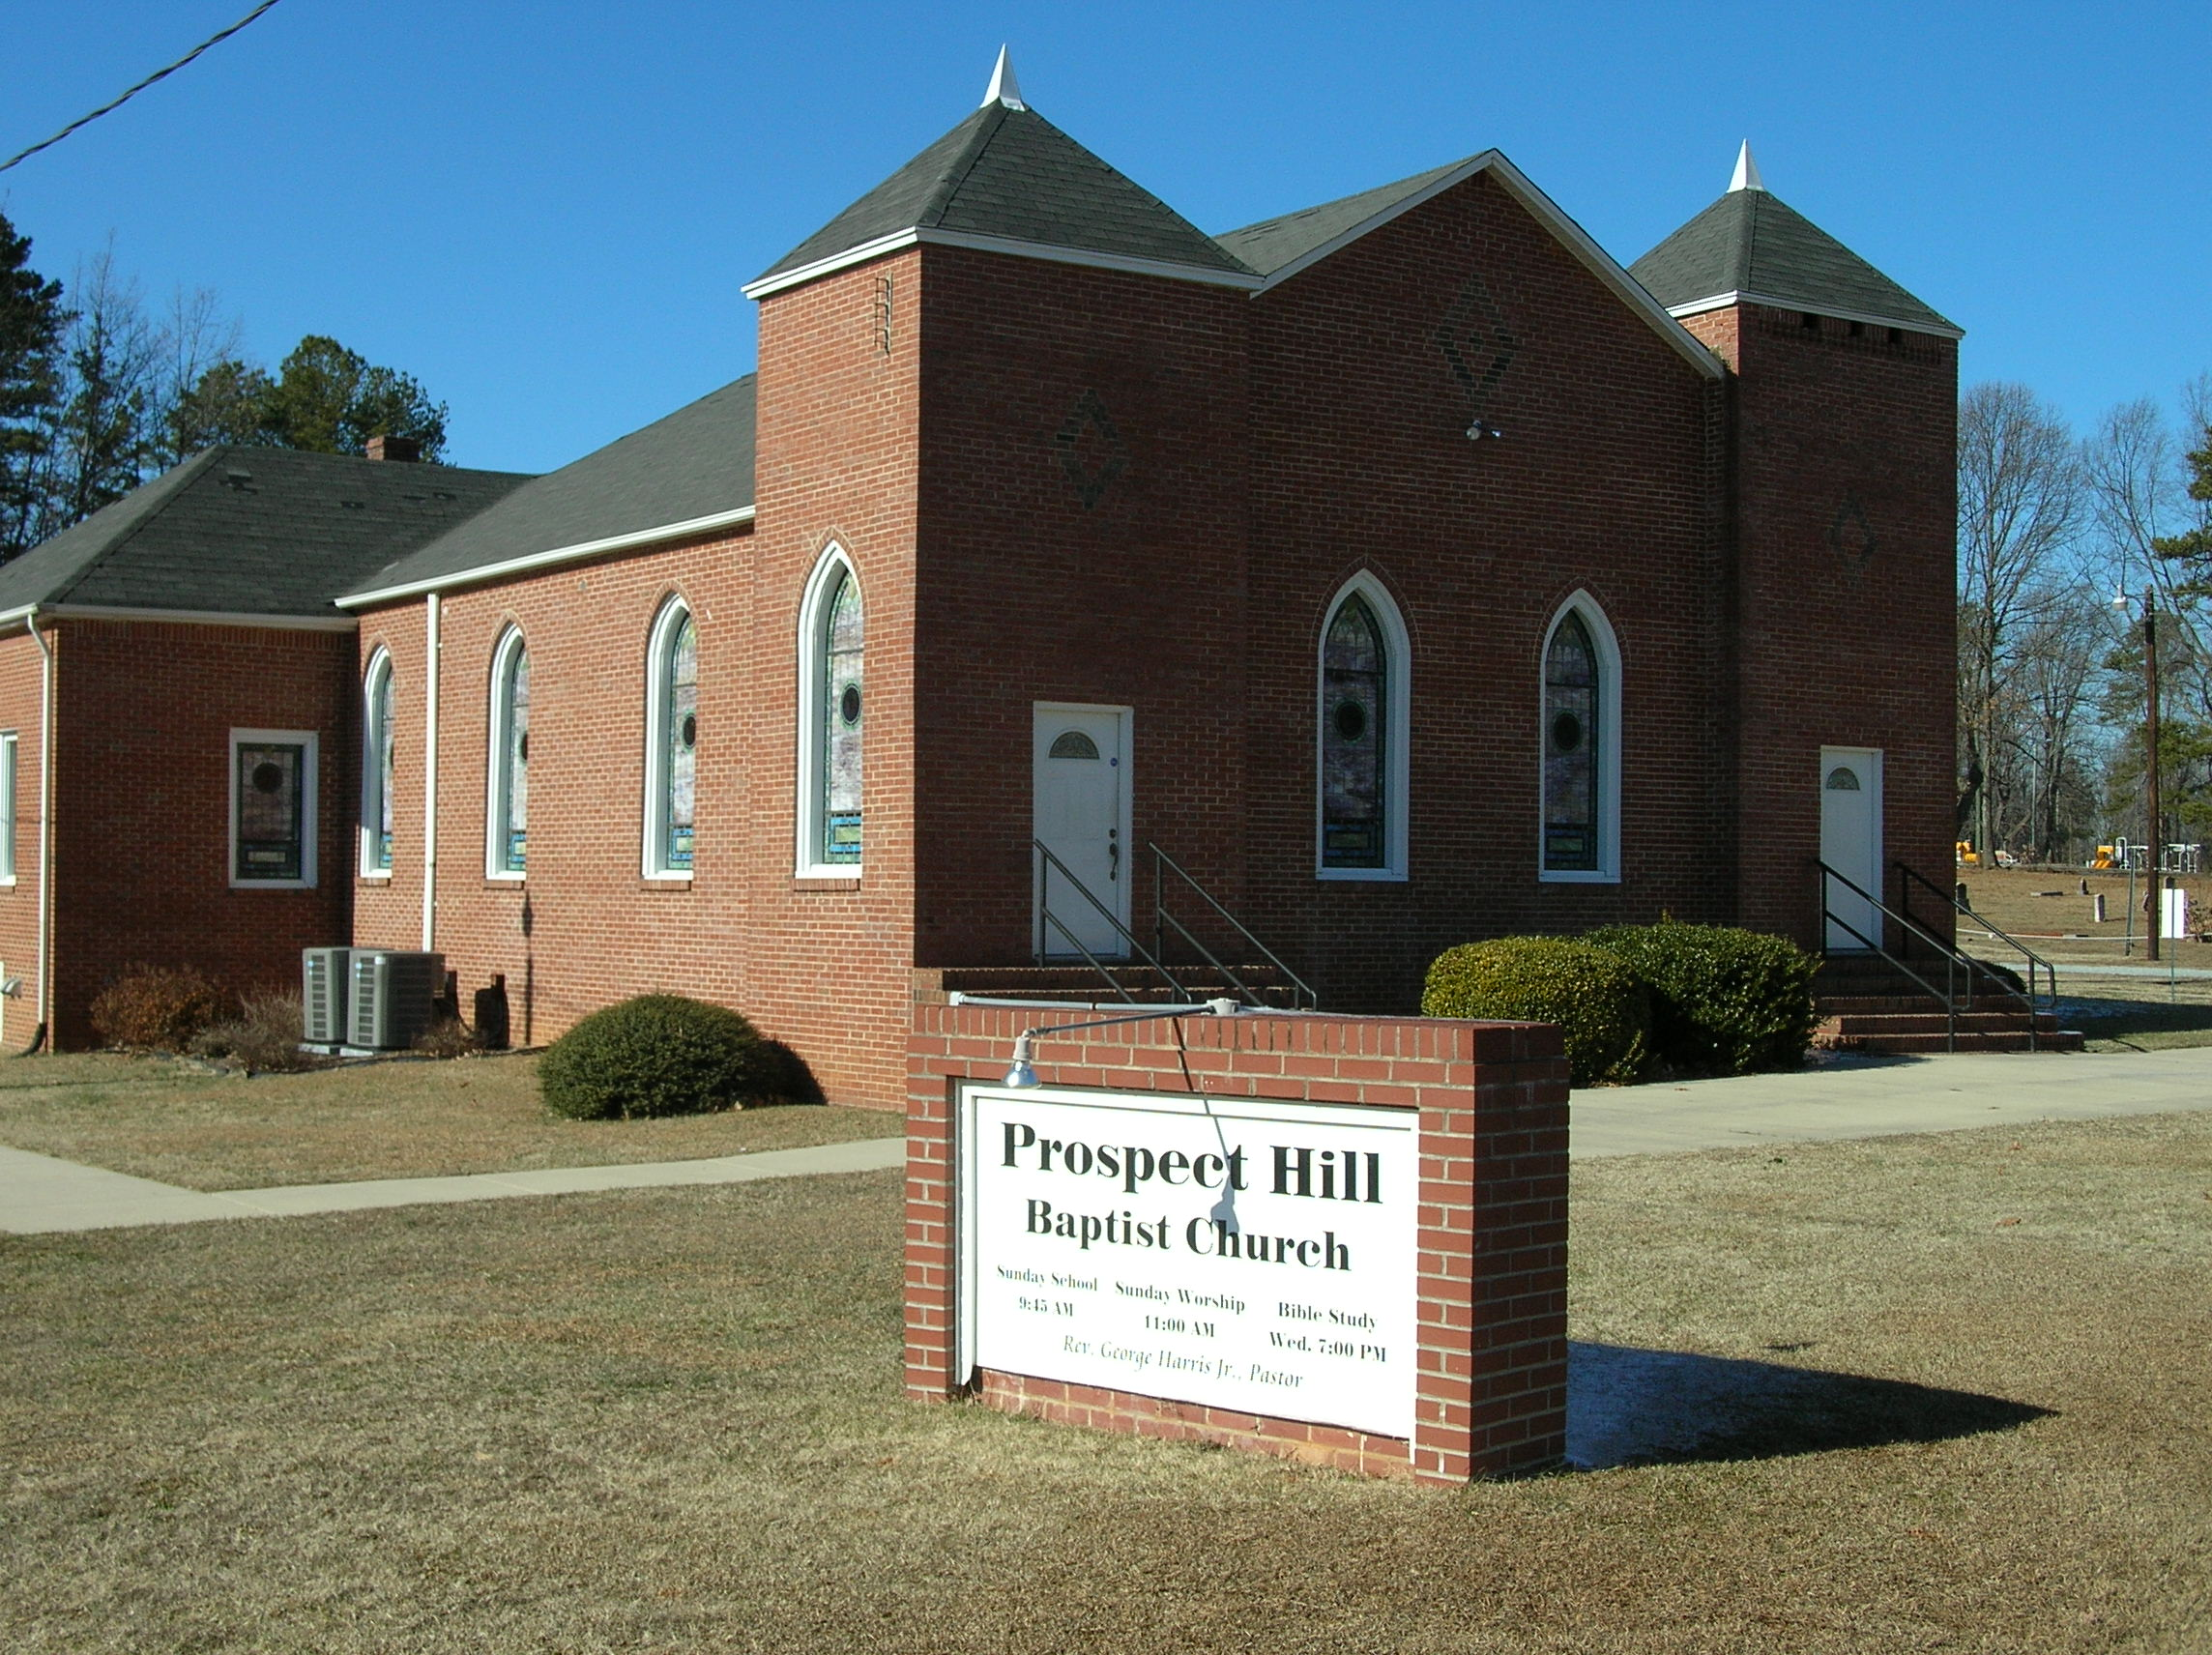 Prospect hill baptist church